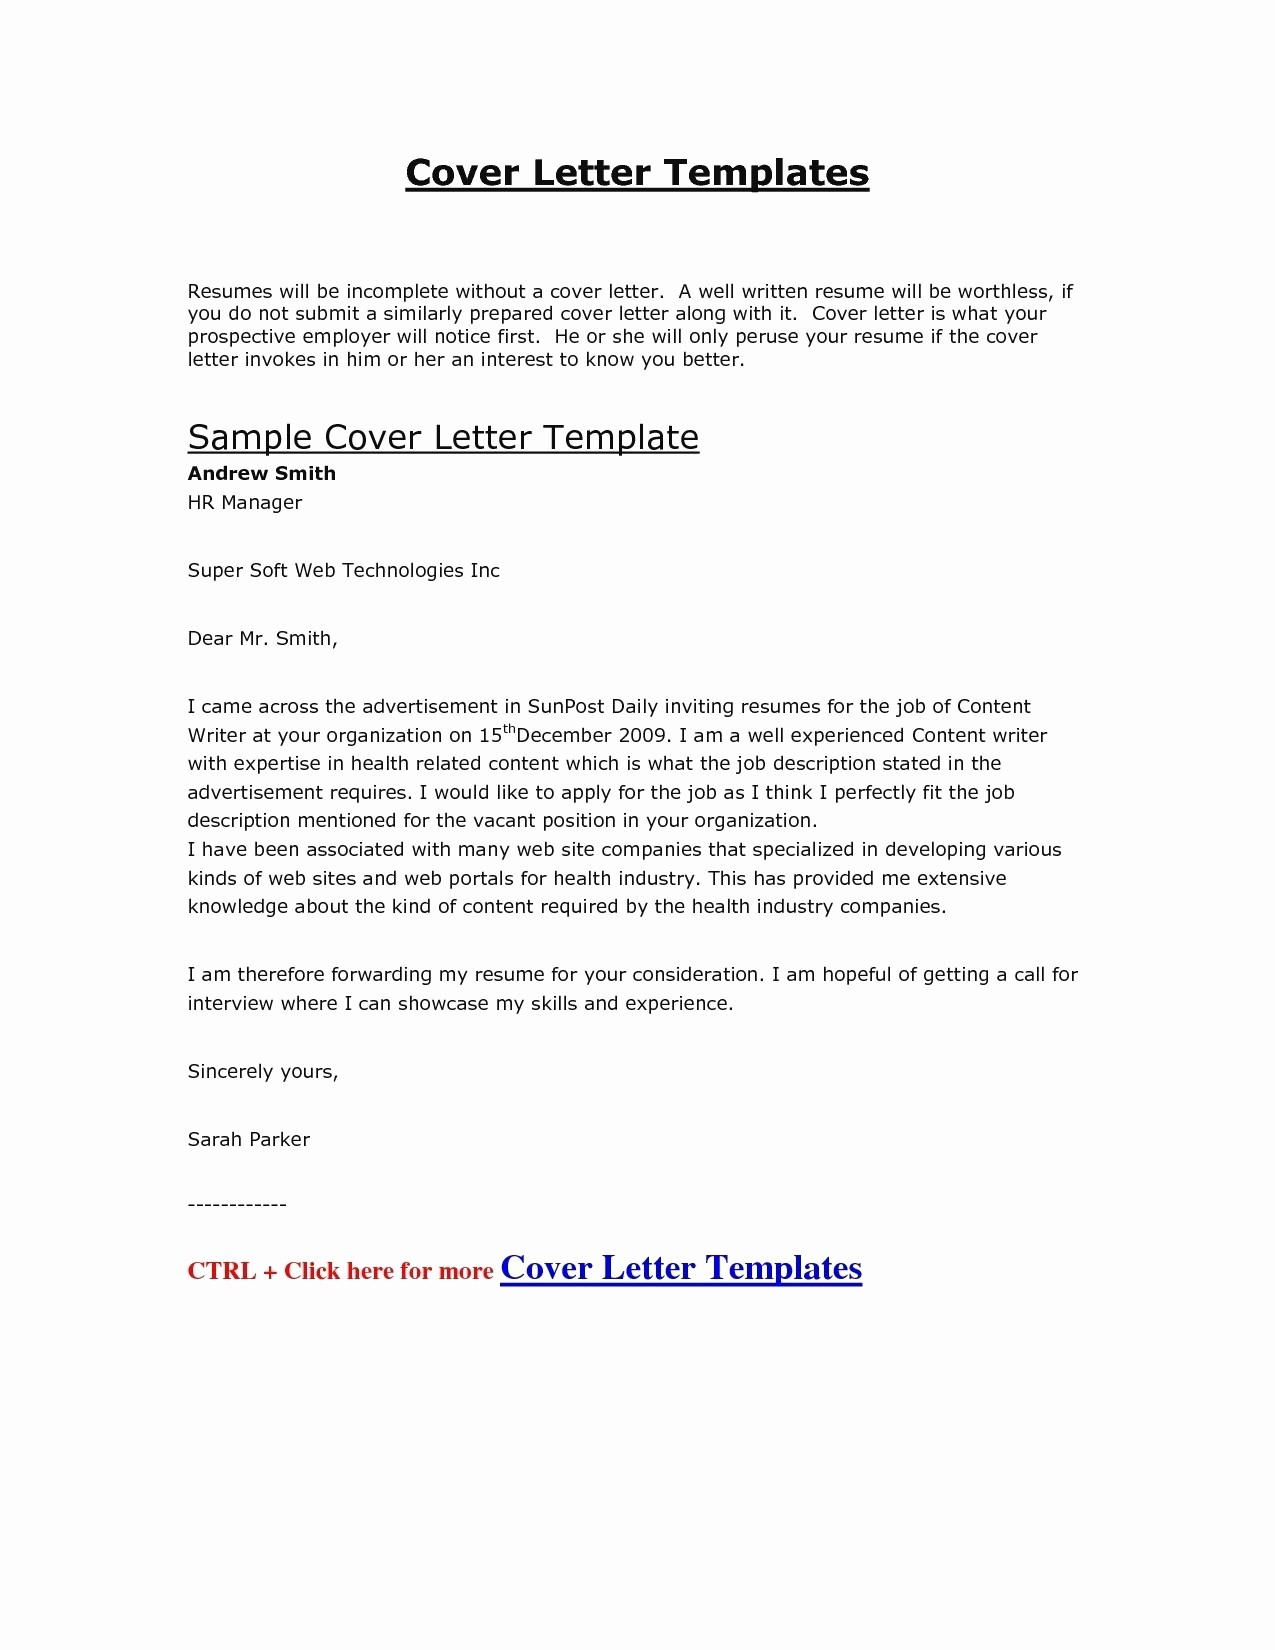 Interview Cover Letter Template - Job Application Letter format Template Copy Cover Letter Template Hr